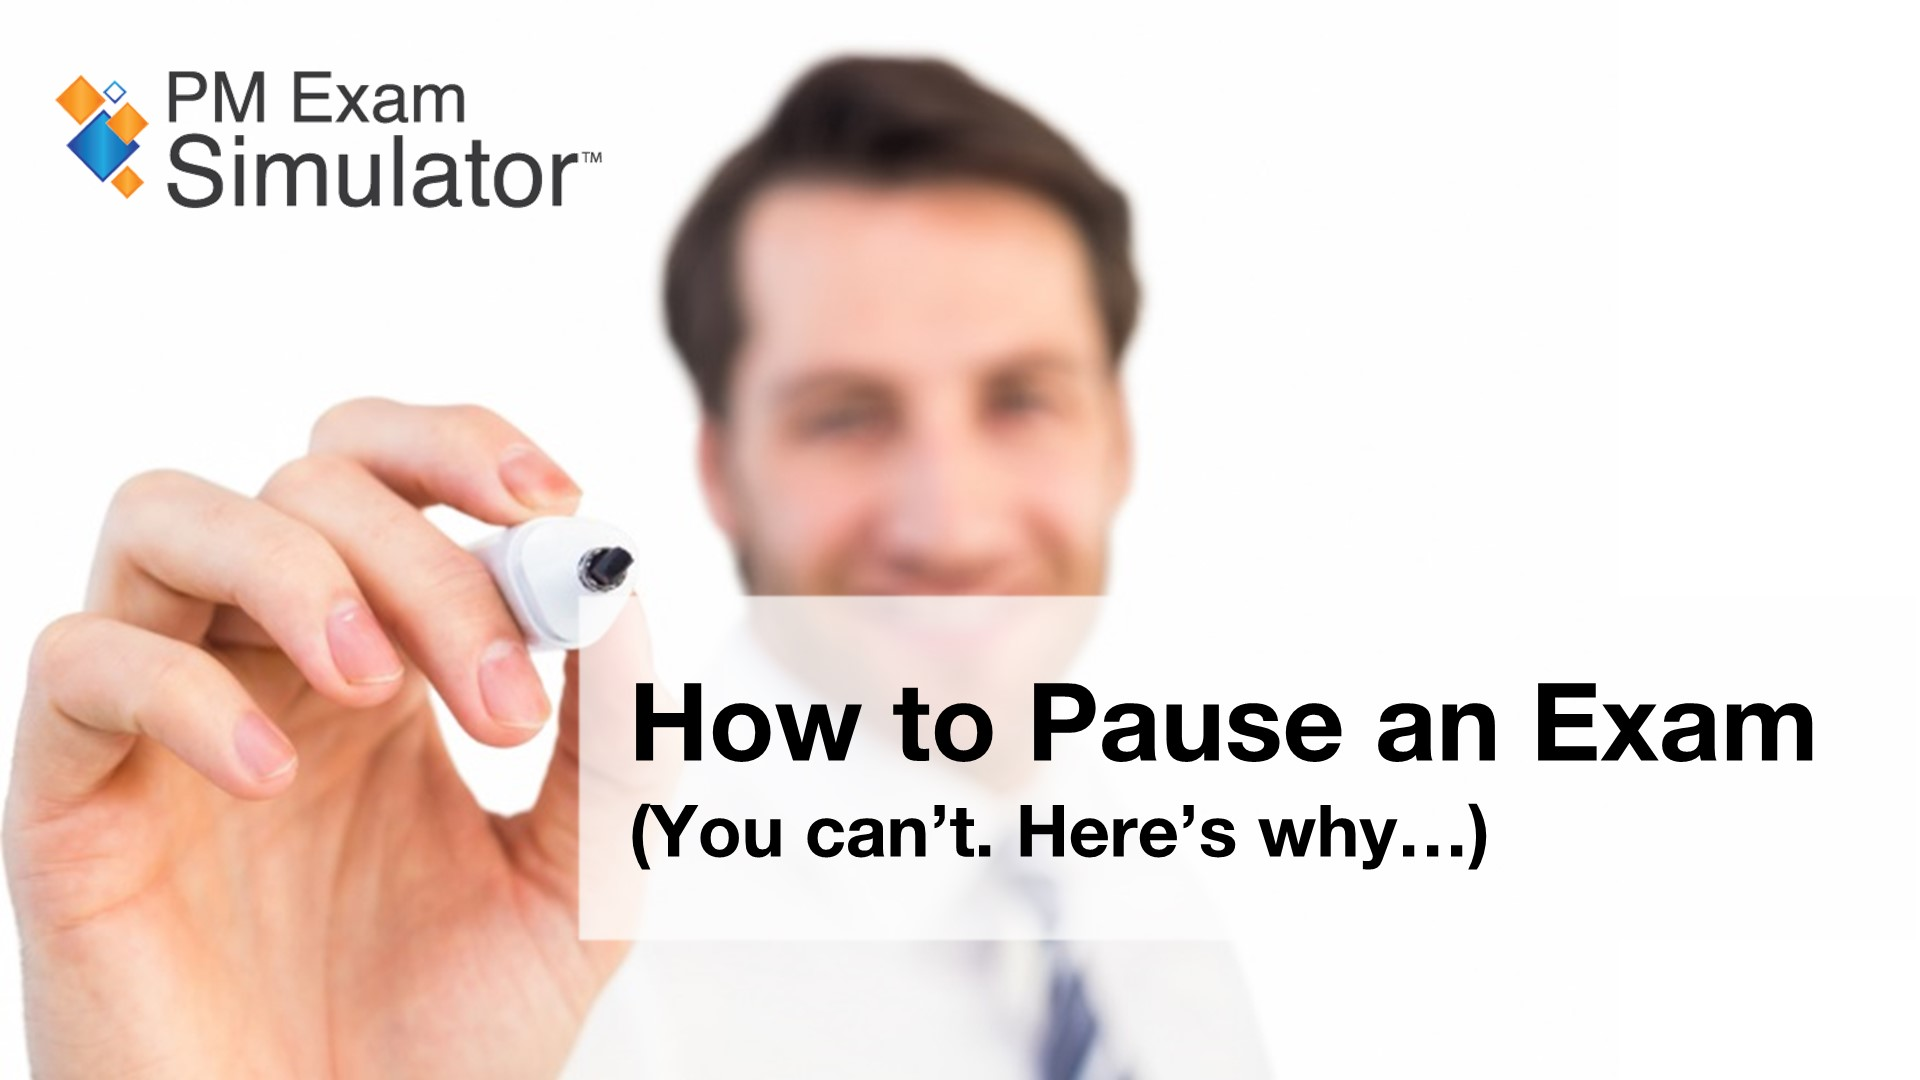 How to Pause an Exam (You can't. Here's why...)